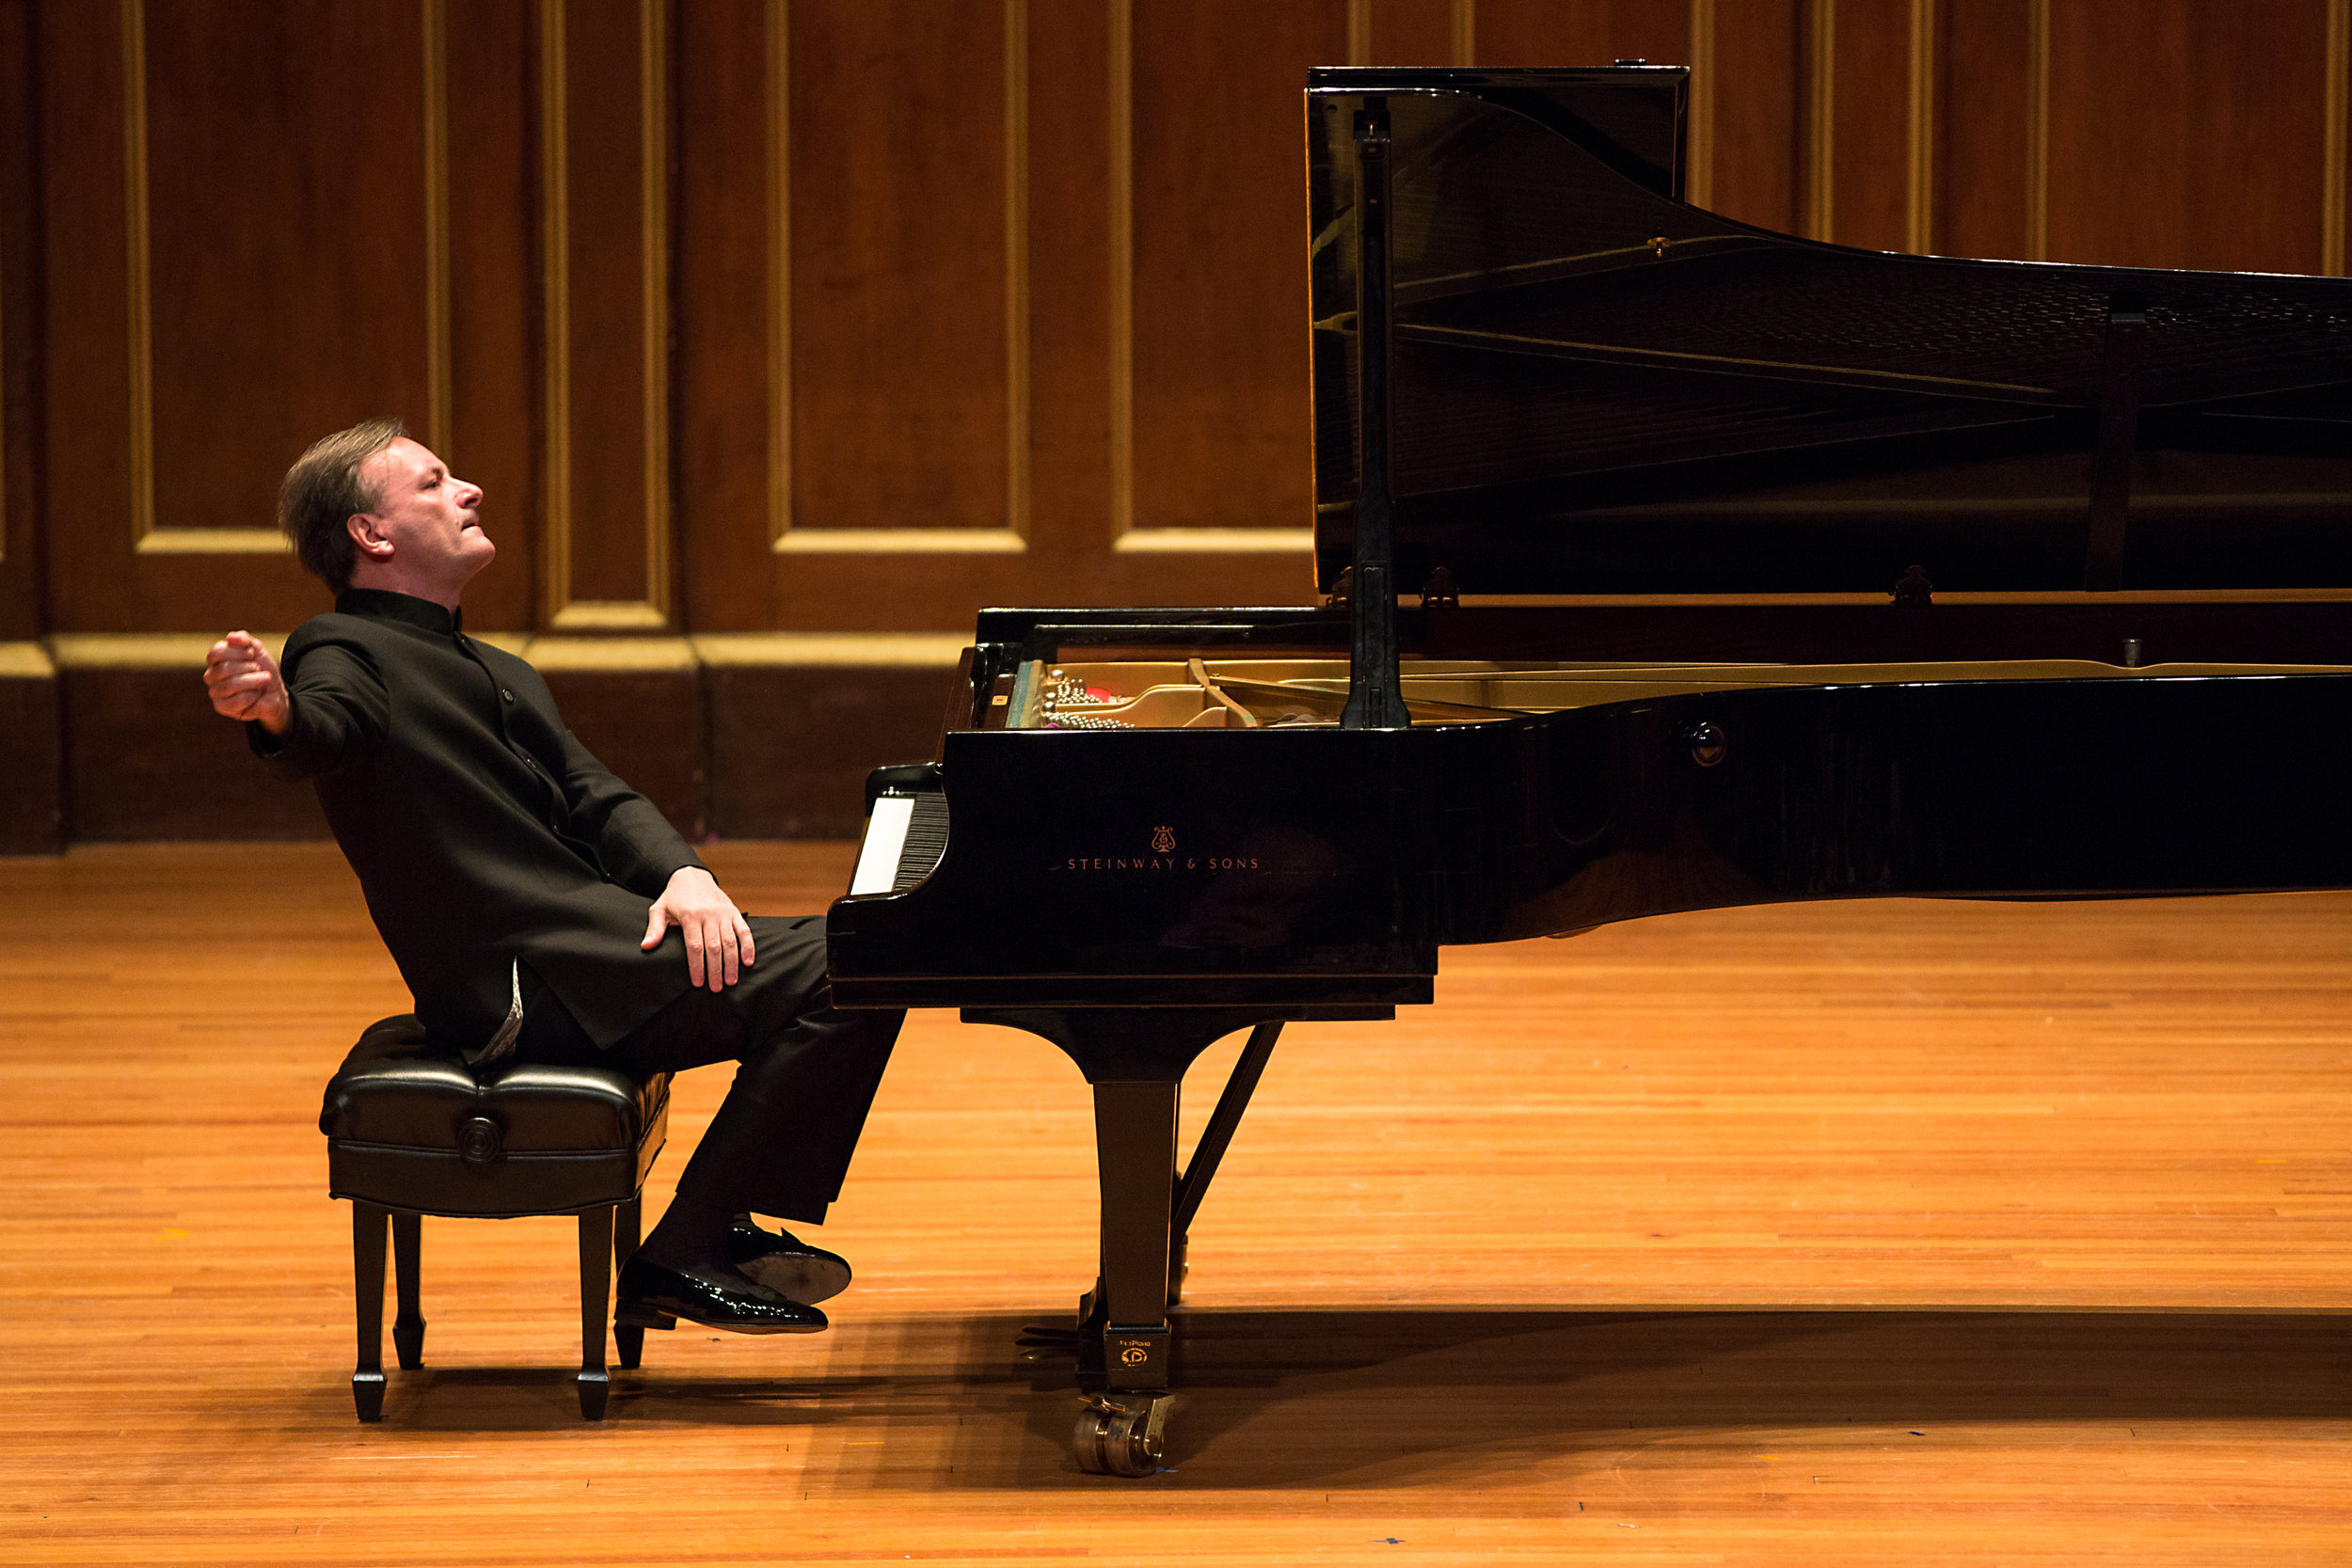 Rachmaninoff & Rimsky-Korsakov - Saturday, February 8, 2019 - 7:30 pm*Gallo Center For the ArtsDavid Lockington, conductorTickets Starting at $19($12 Student Tickets are available for all classic concerts.)